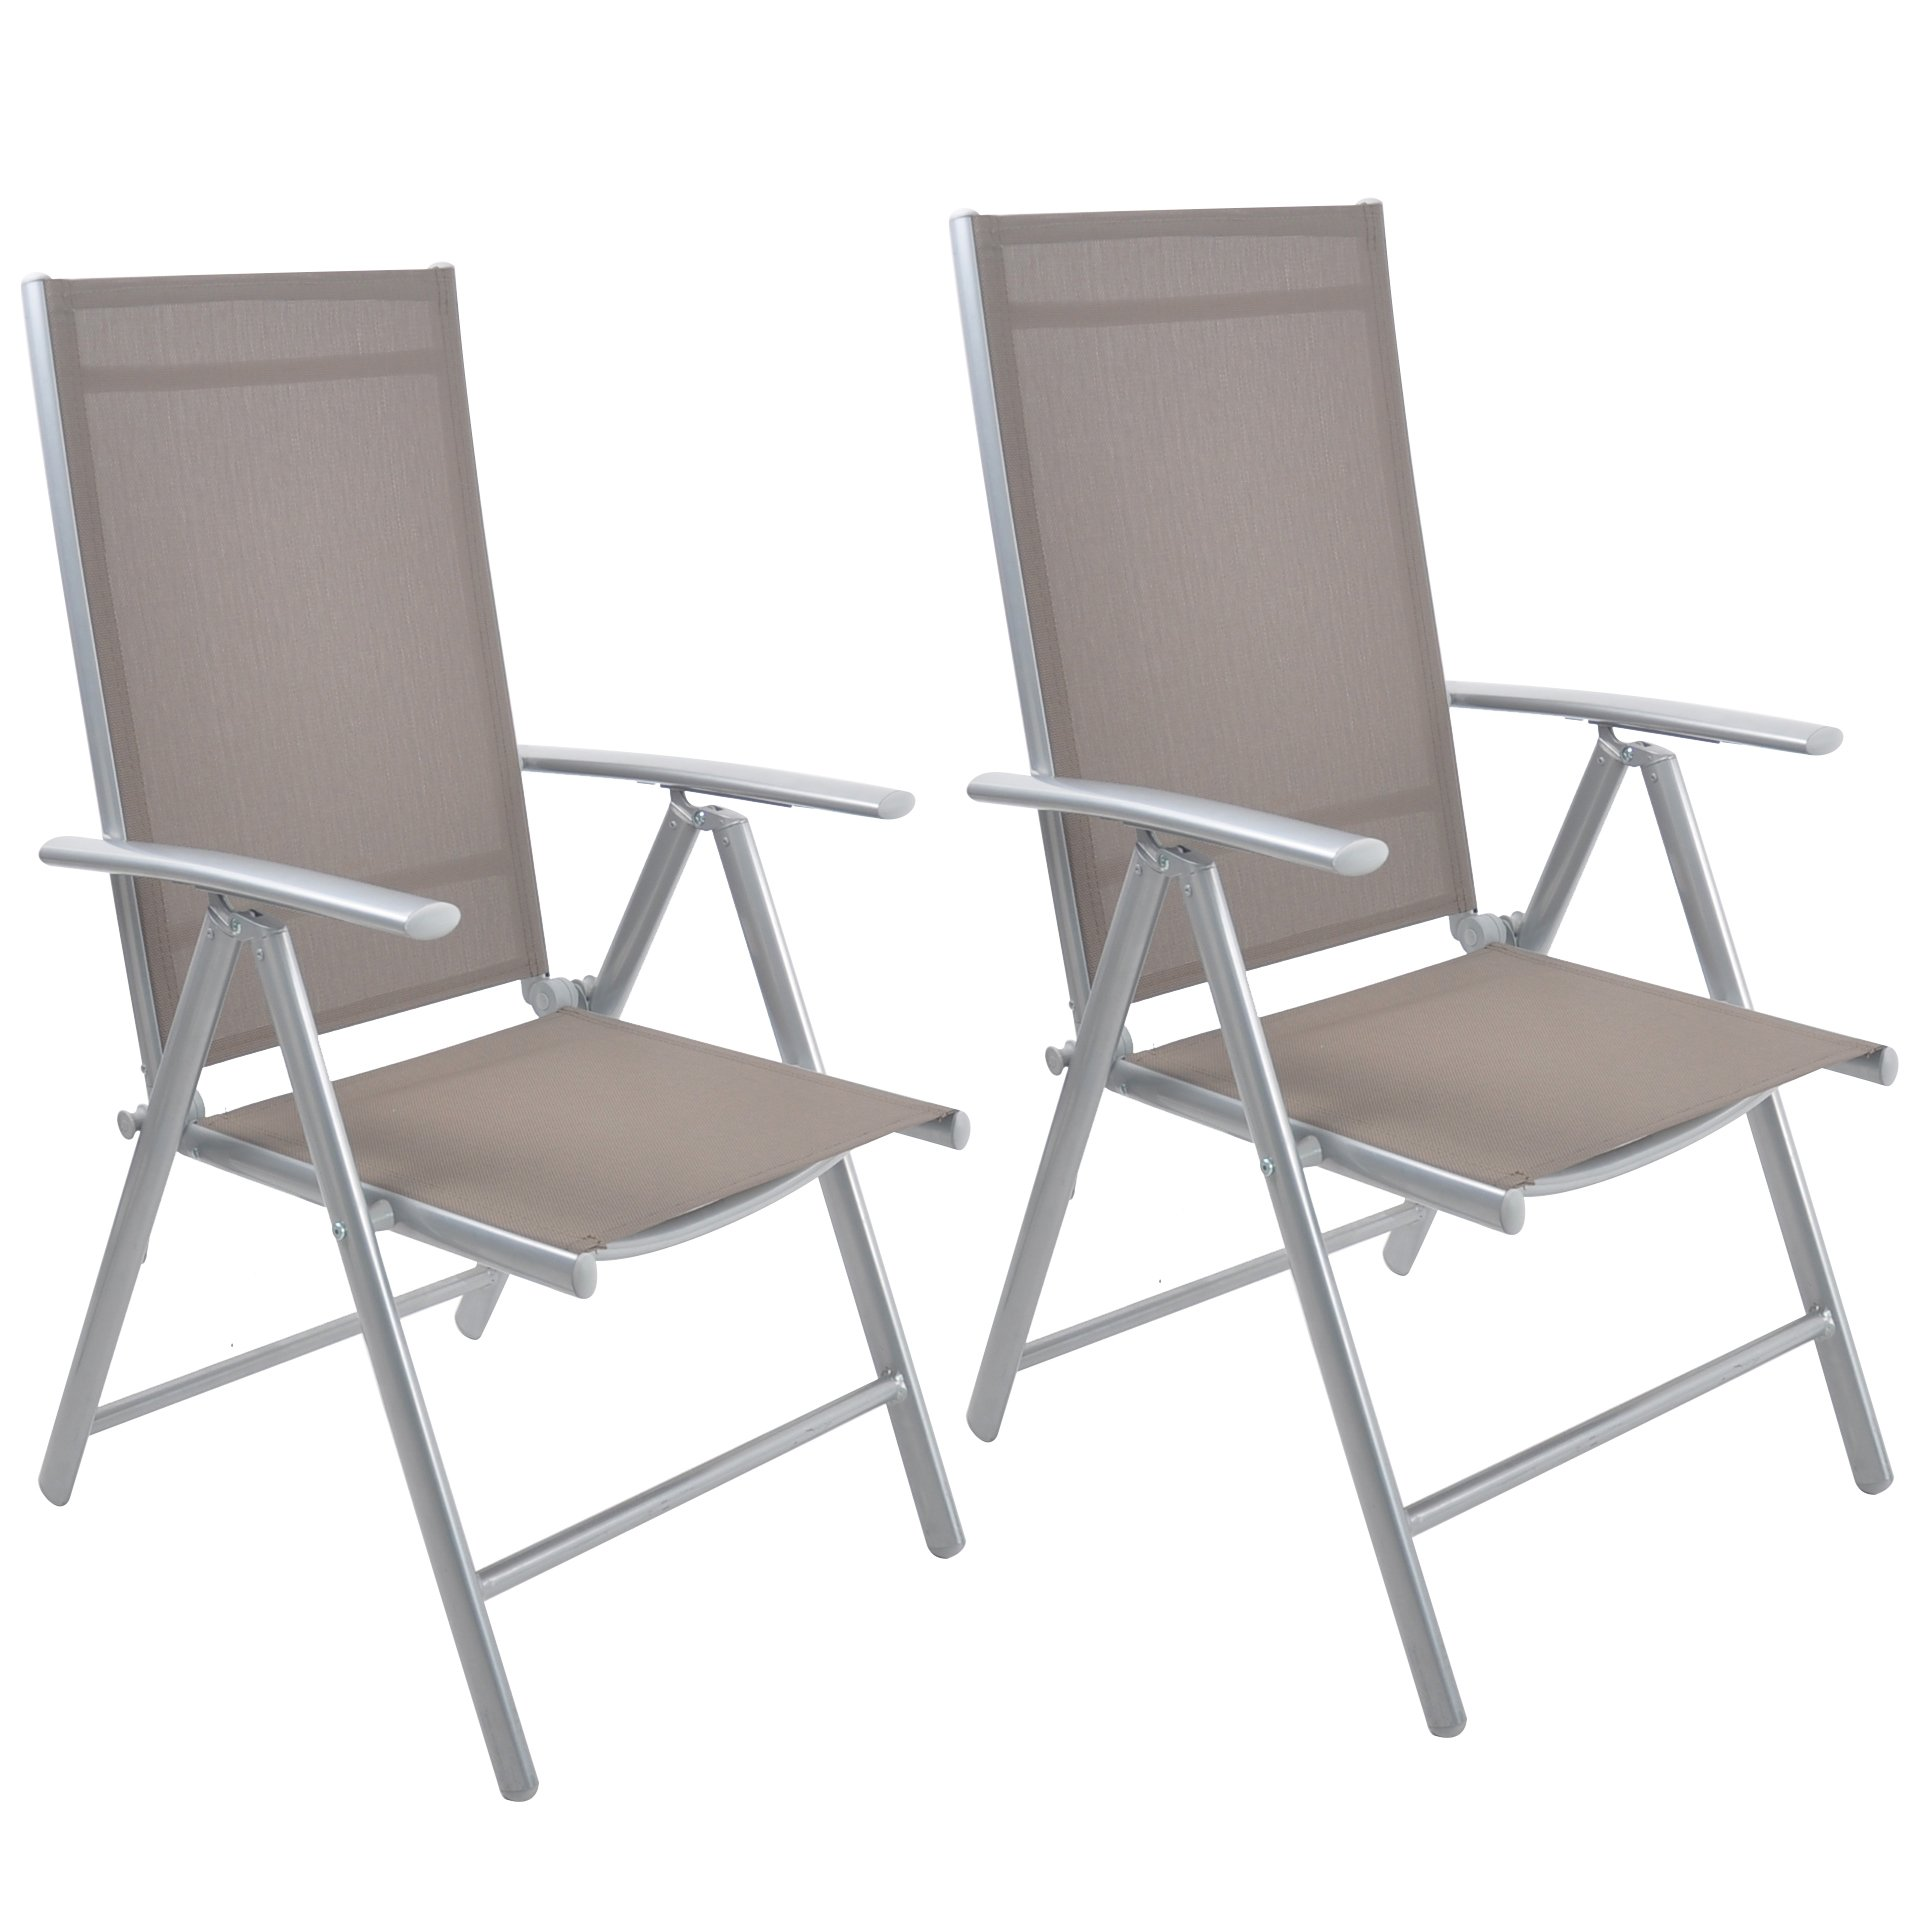 Livebest Set of 2 Folding Sling Chair Patio Adjustable Reclining Back Sturdy Aluminum Frame with Armrest Indoor Outdoor Furniture Garden Pool Bench,Gary